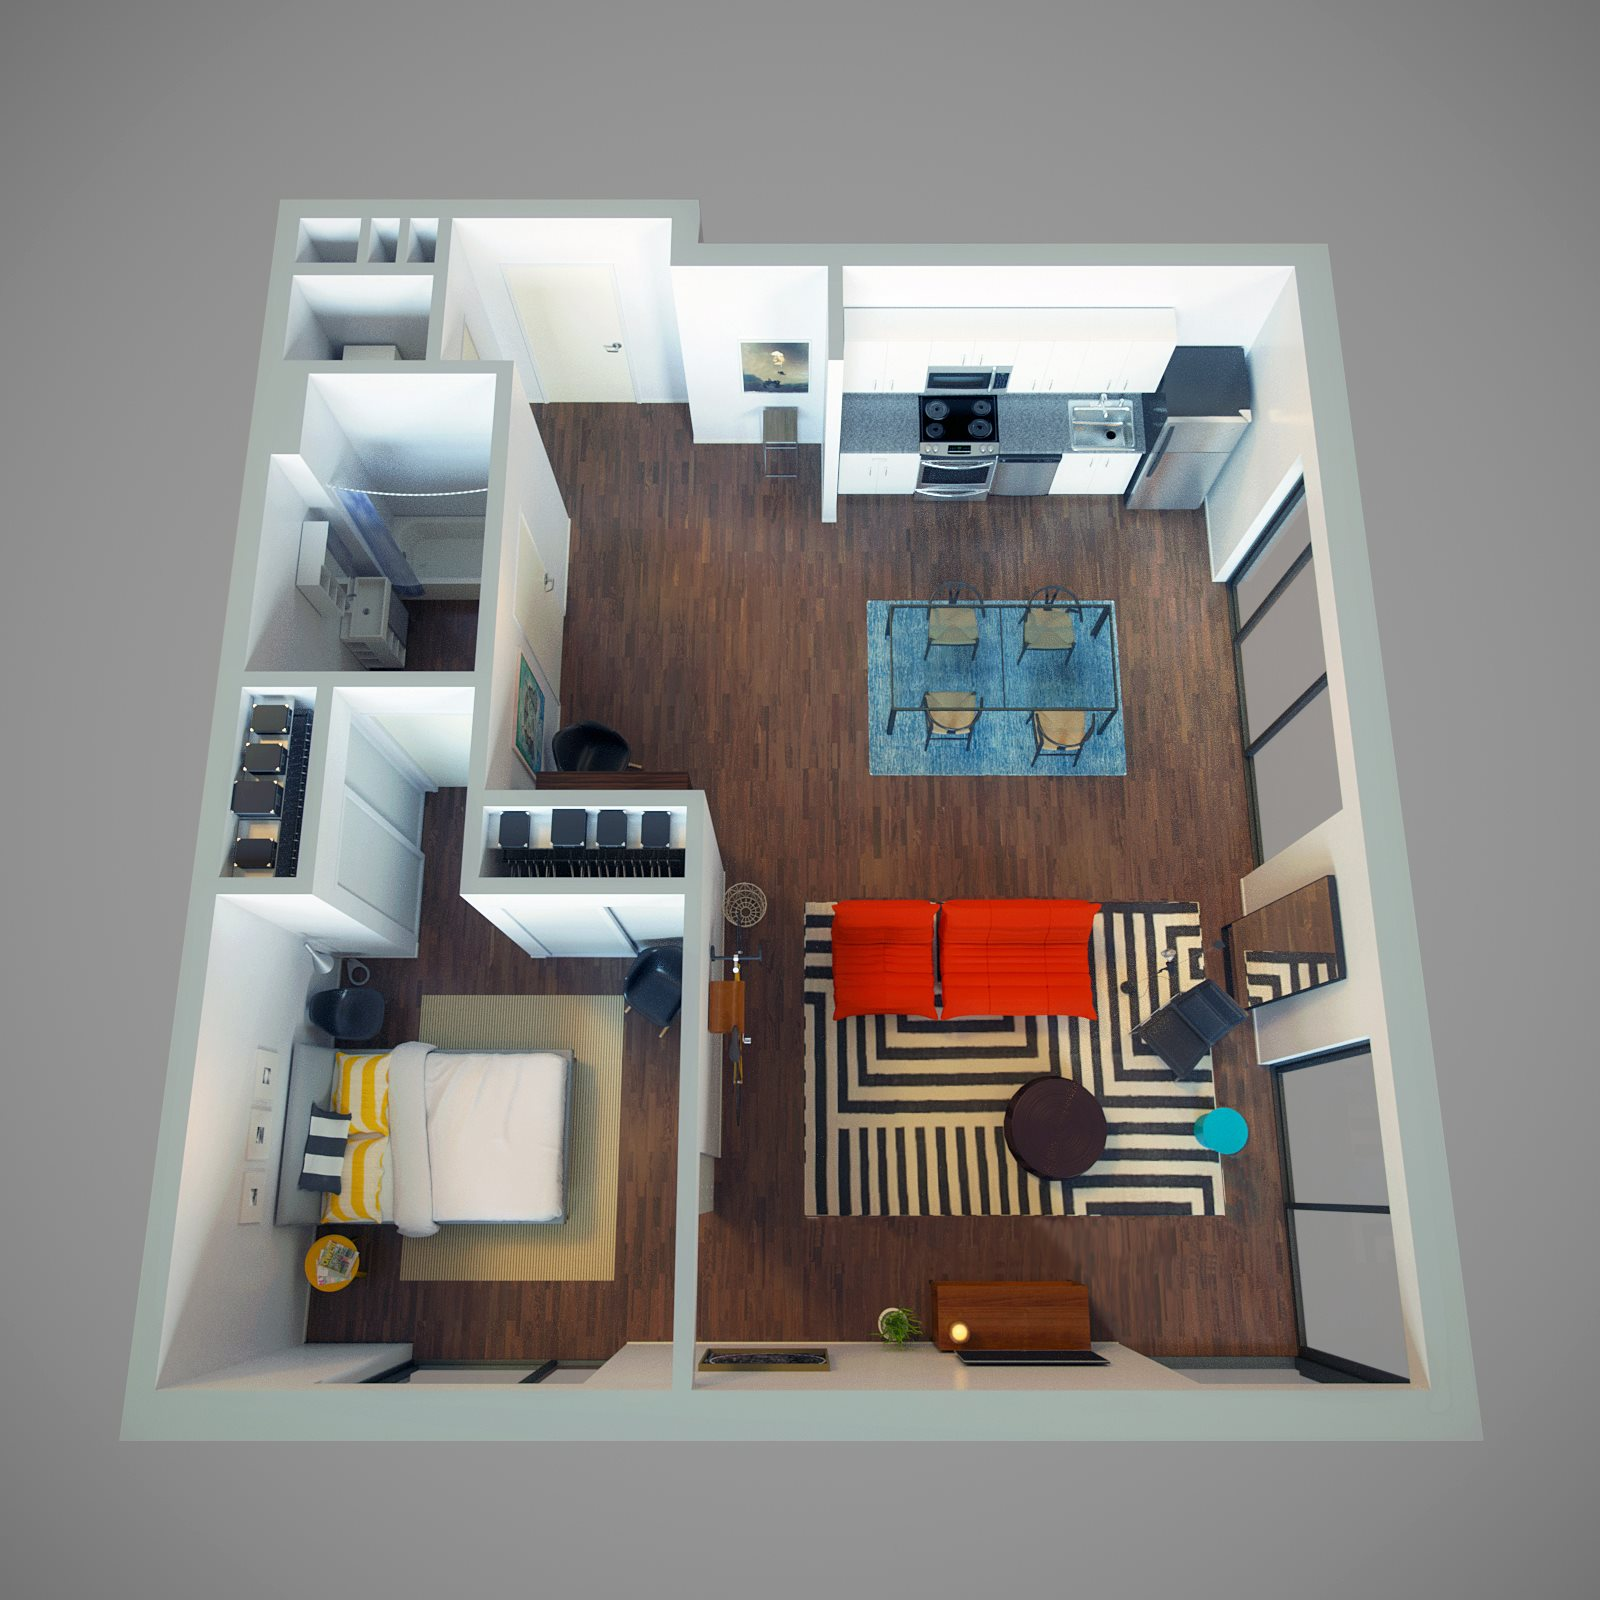 1 Bed - Sidestreet (plus) Floor Plan 5